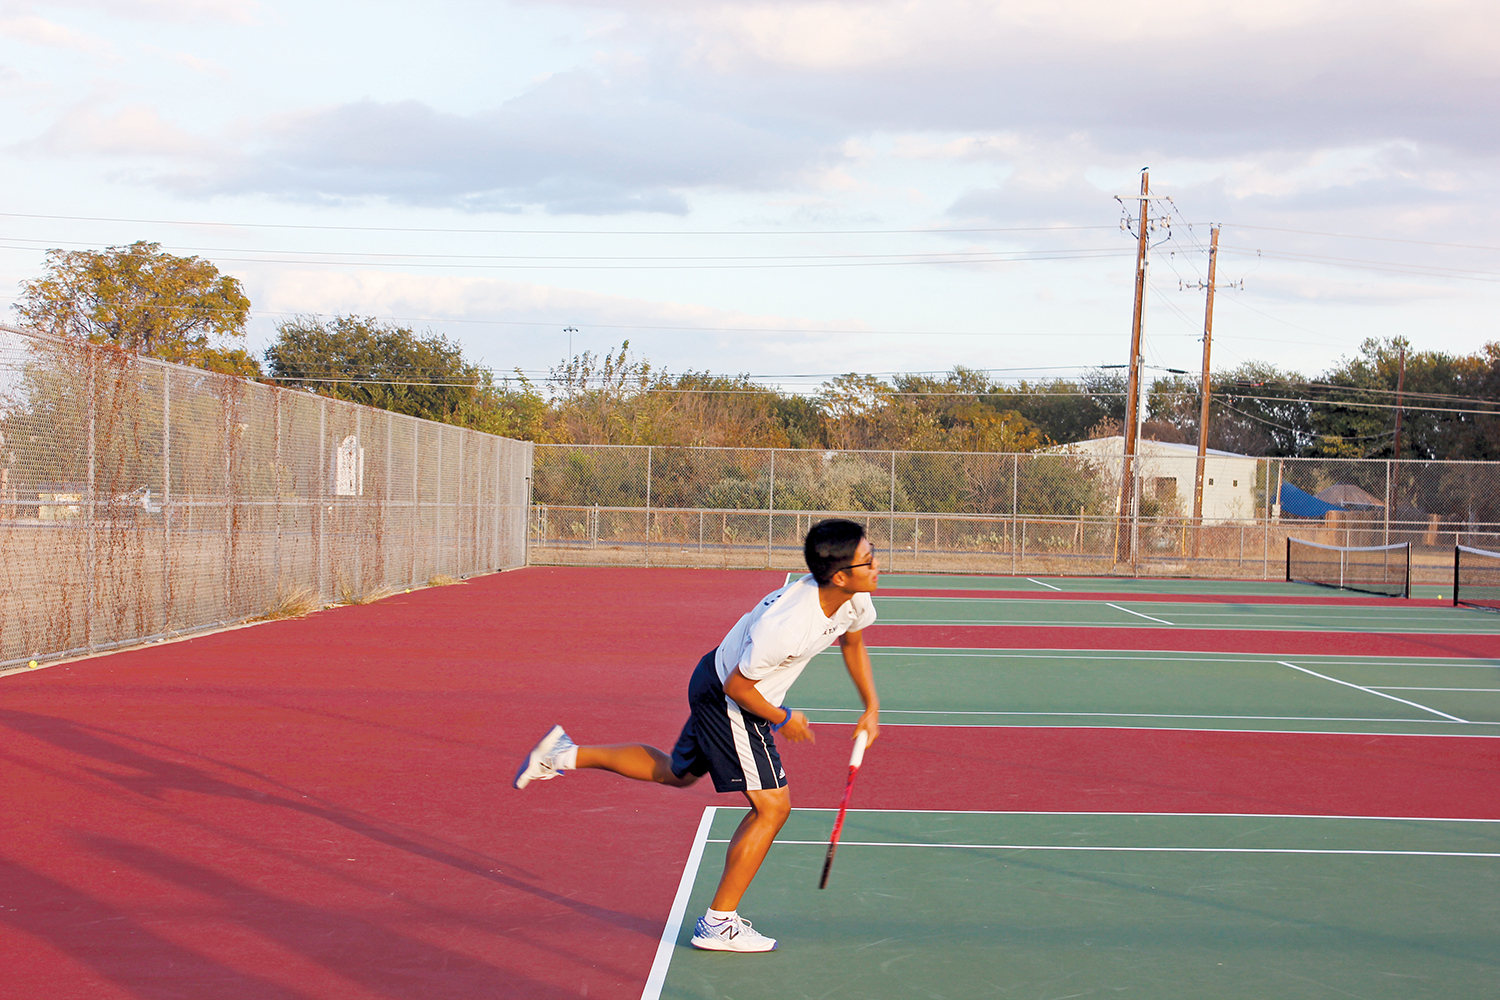 Practice Makes Perfect Senior Andy Doan practices his serve. Doan and the Akins Tennis team head into the spring season hoping to bounce back from a lackluster fall season